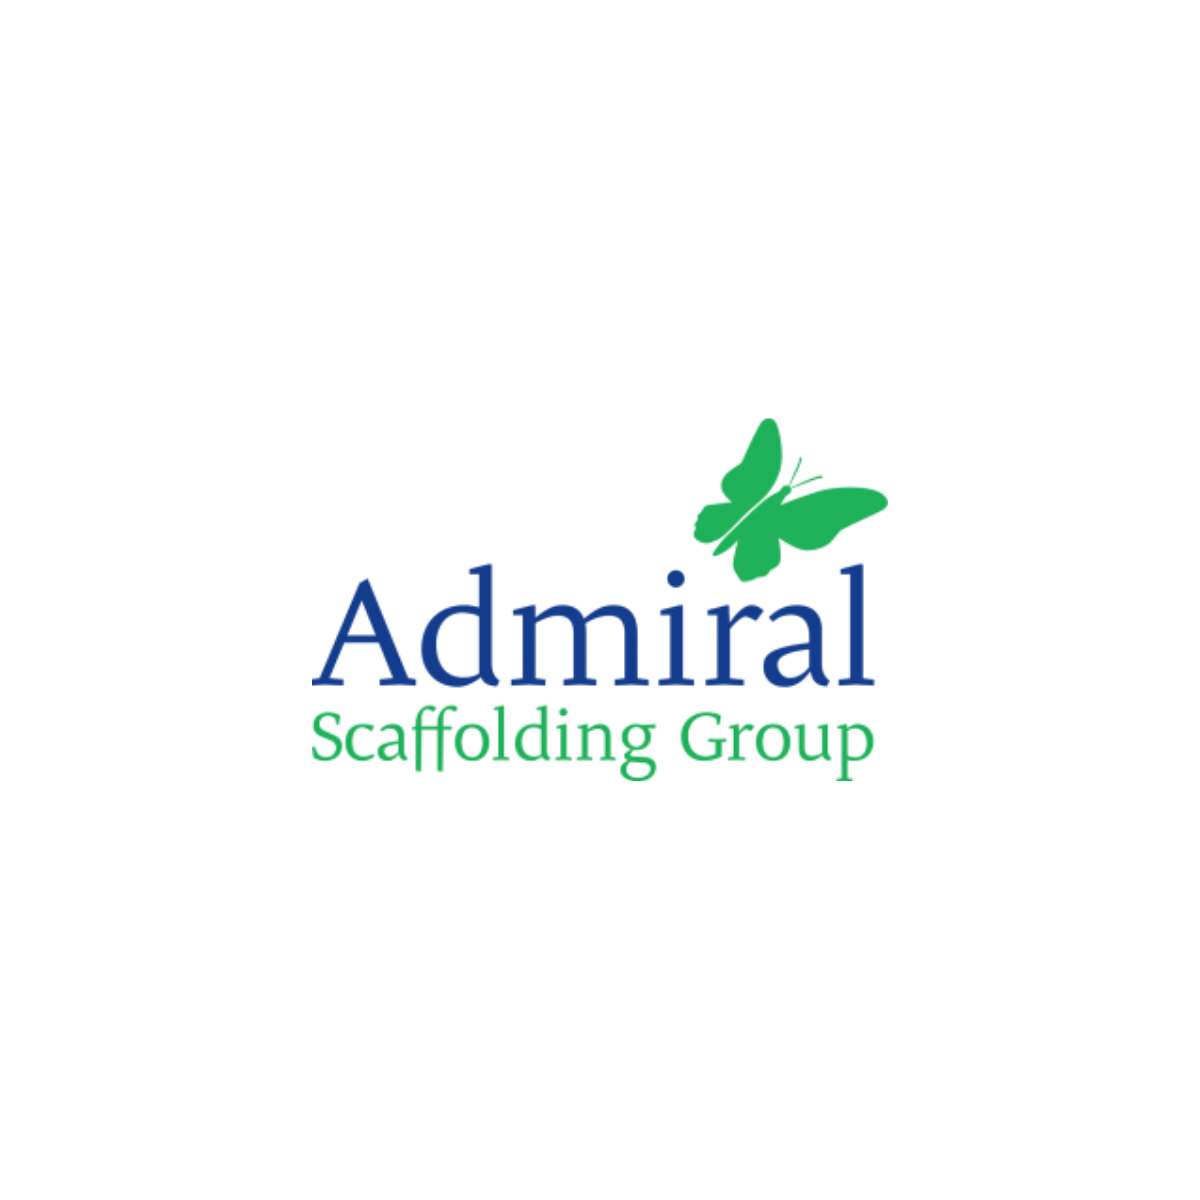 Admiral Scaffolding Group logo